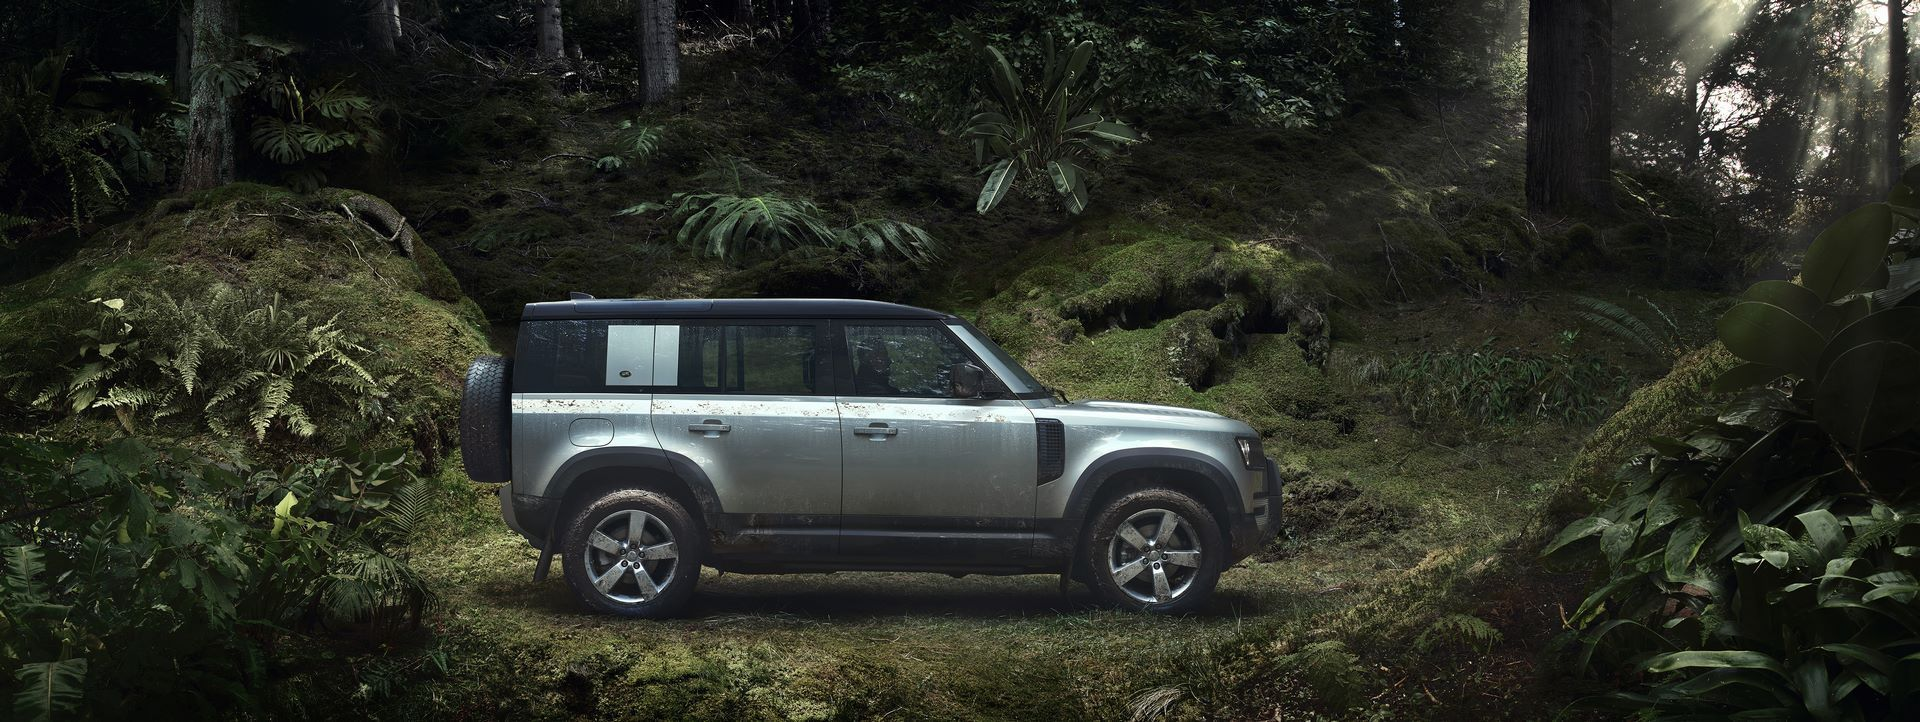 Land-Rover-Defender-2020-156